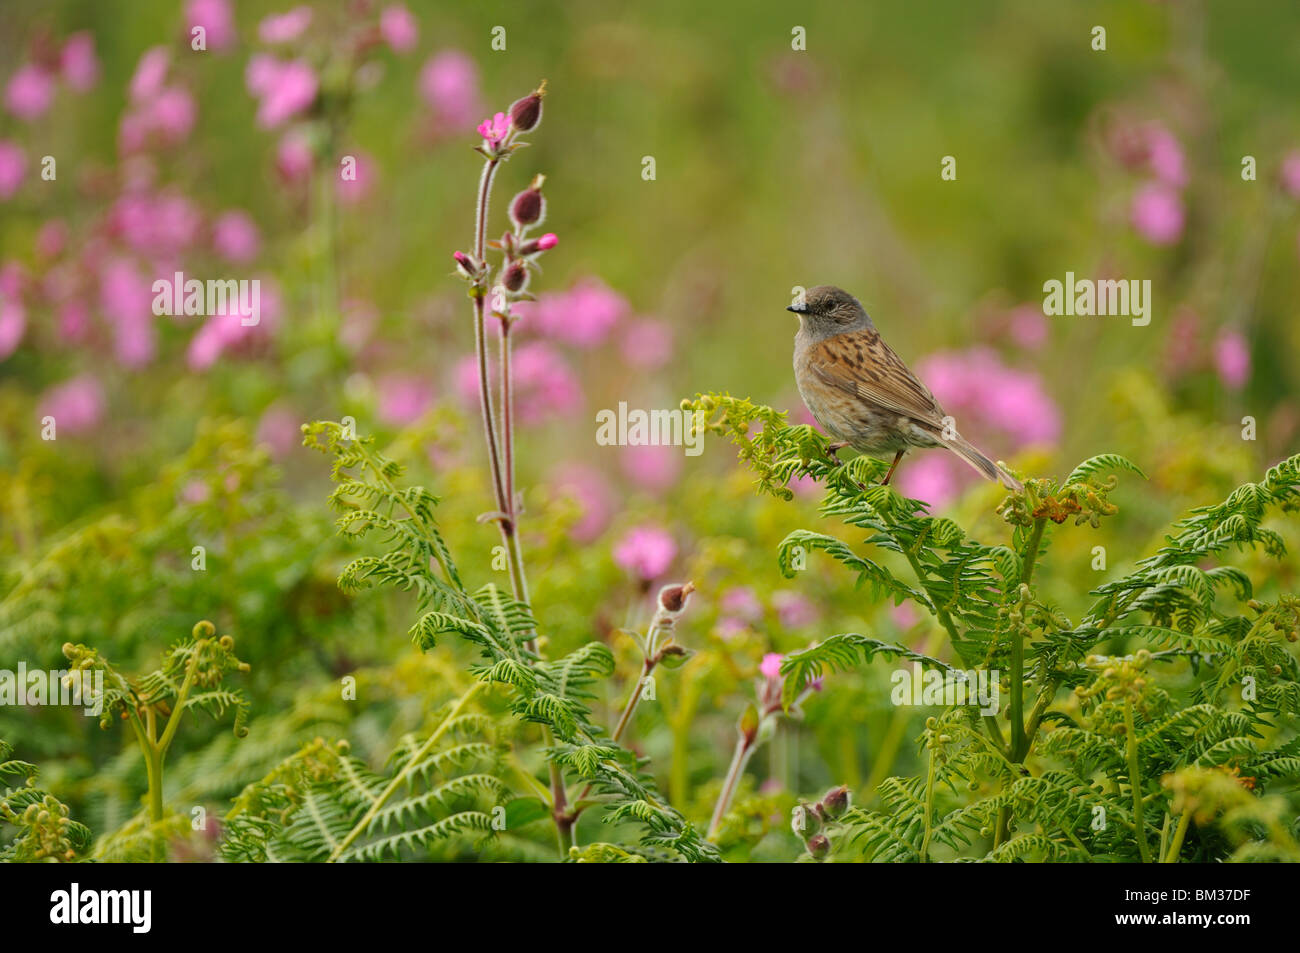 Hedgesparrow, Hedge Accentor, Dunnock (Prunella modularis), adult perched on fern frond next to Red Campion (Silene Stock Photo